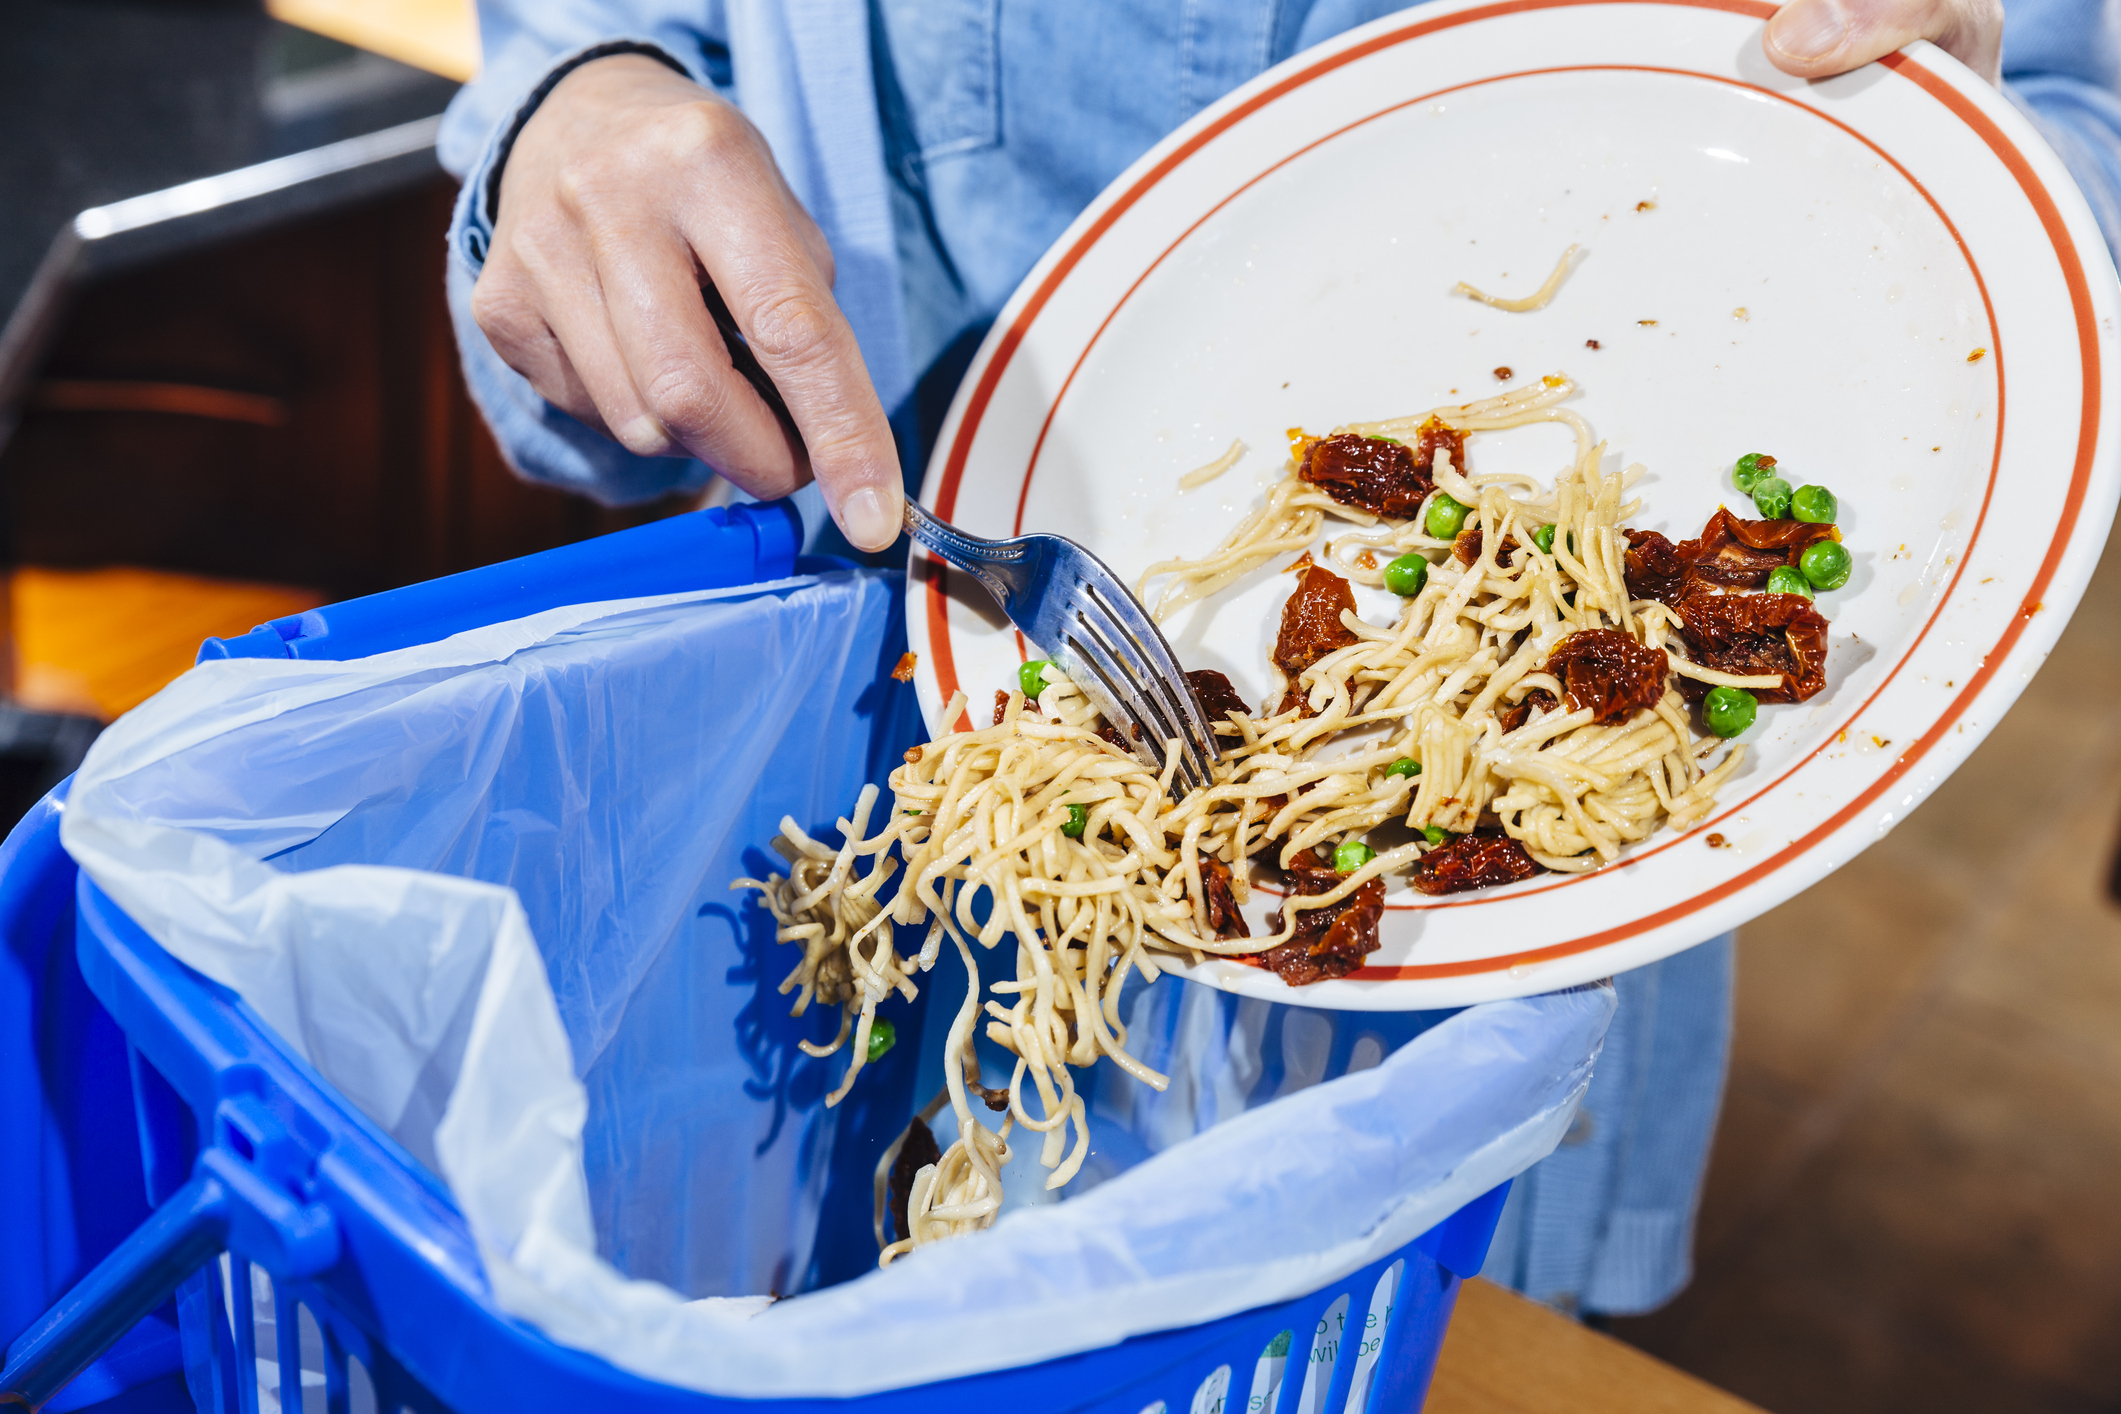 Food waste makes up almost half of what goes in householders' rubbish, Auckland Council figures...